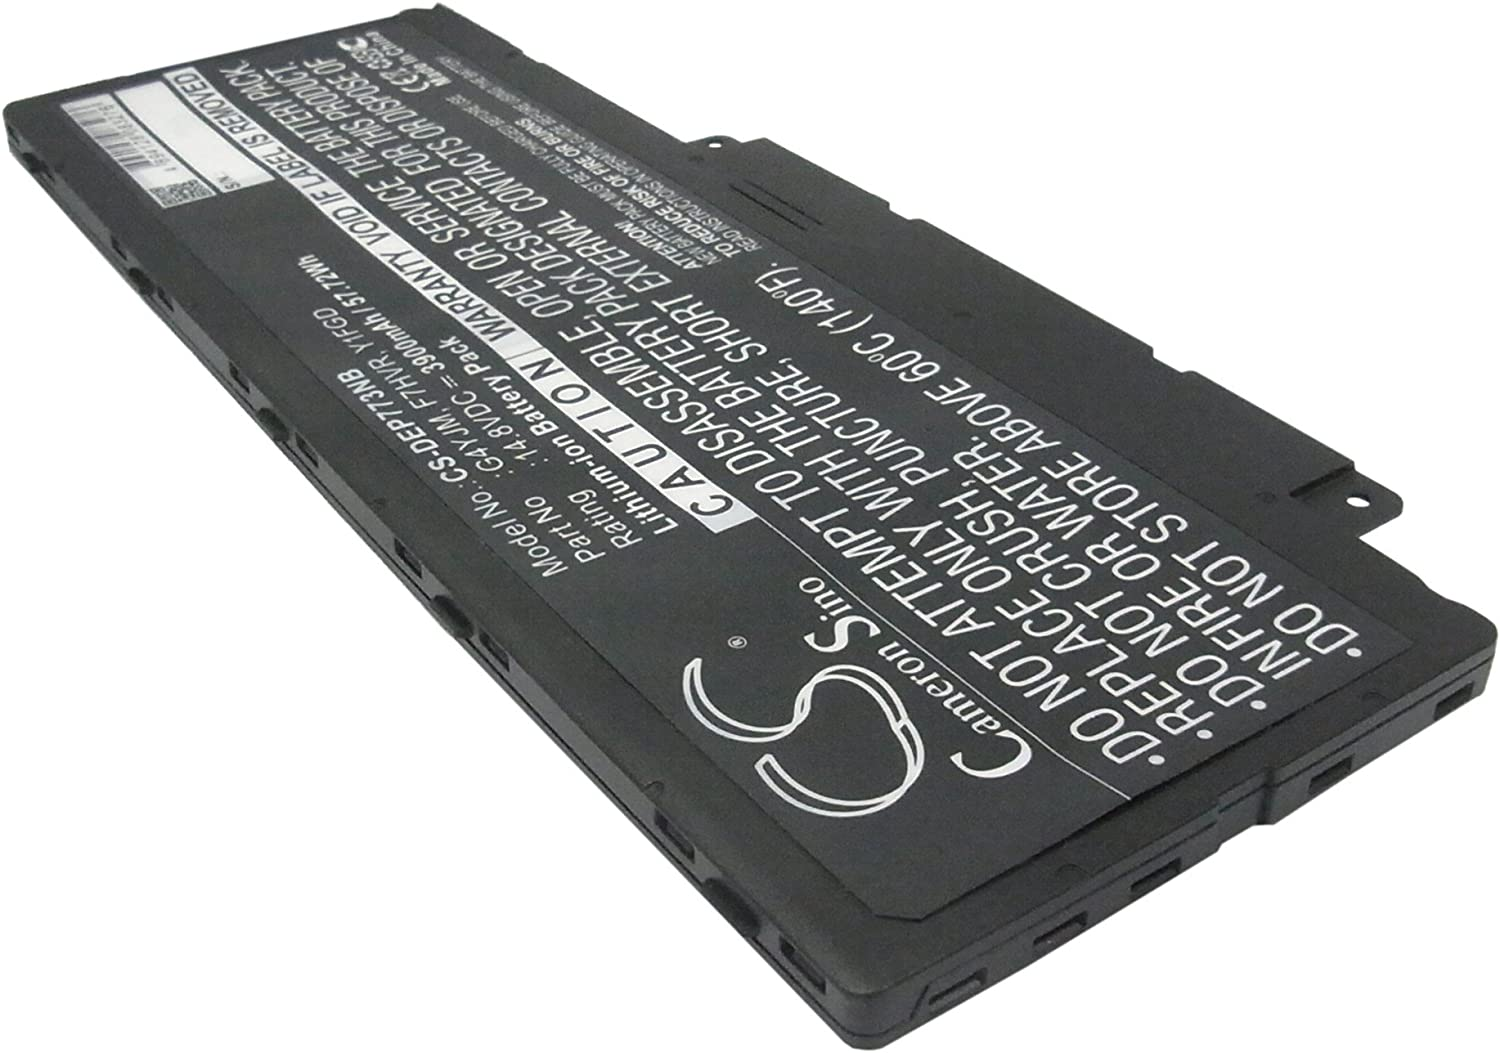 GAXI Battery for DELL Inspiron 15 7537, Inspiron 15-7537 P36F, Inspiron 7737 Replacement for P/N 062VNH, F7HVR, G4YJM